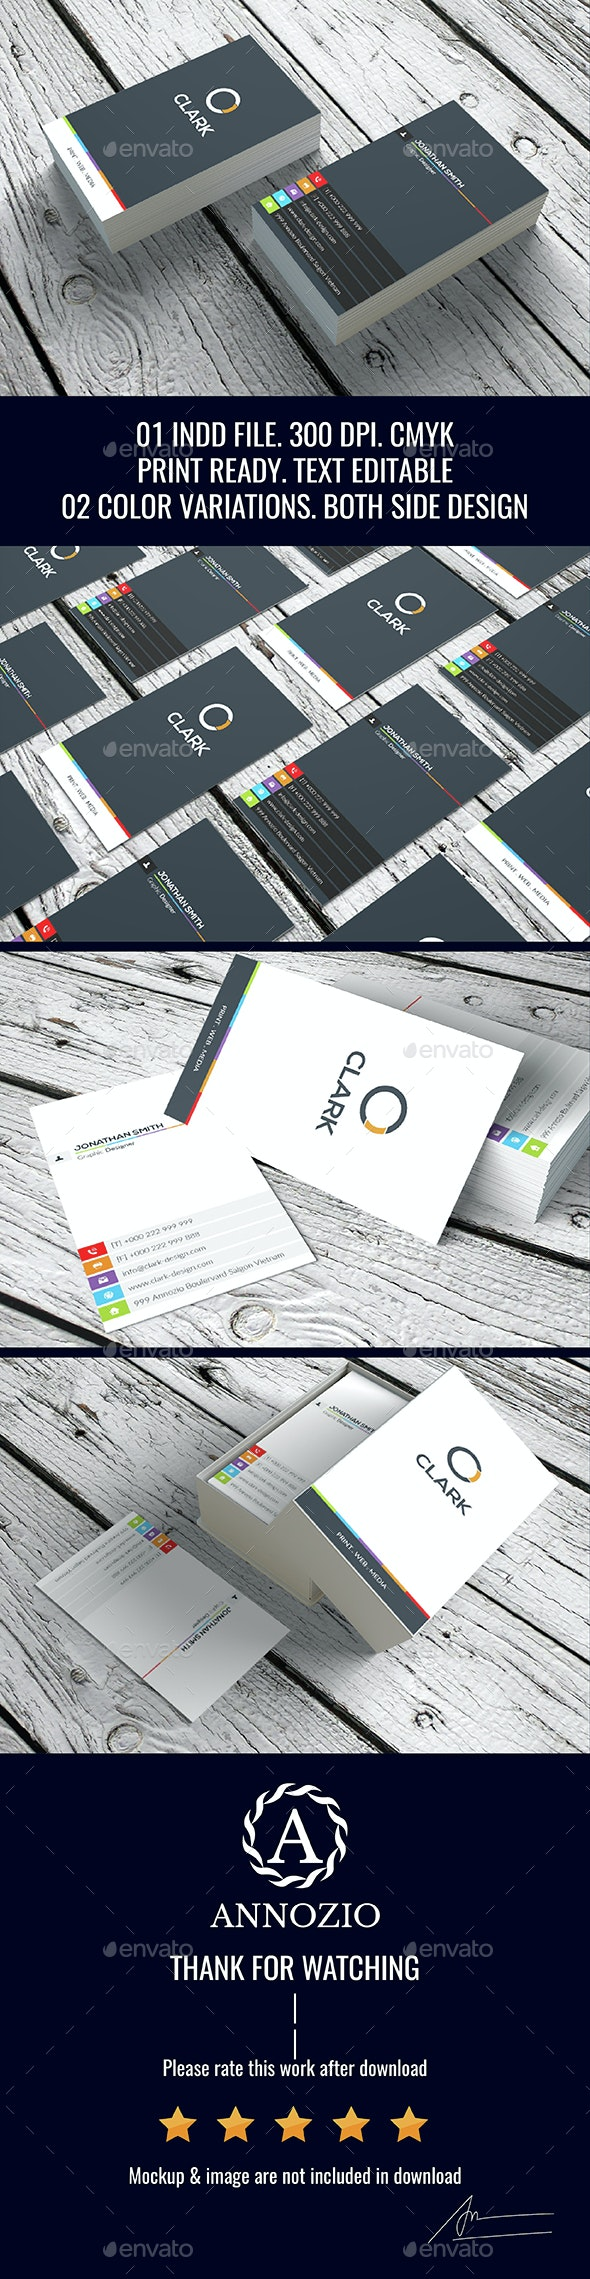 Modern Creative BC InDesign 0004 - Creative Business Cards